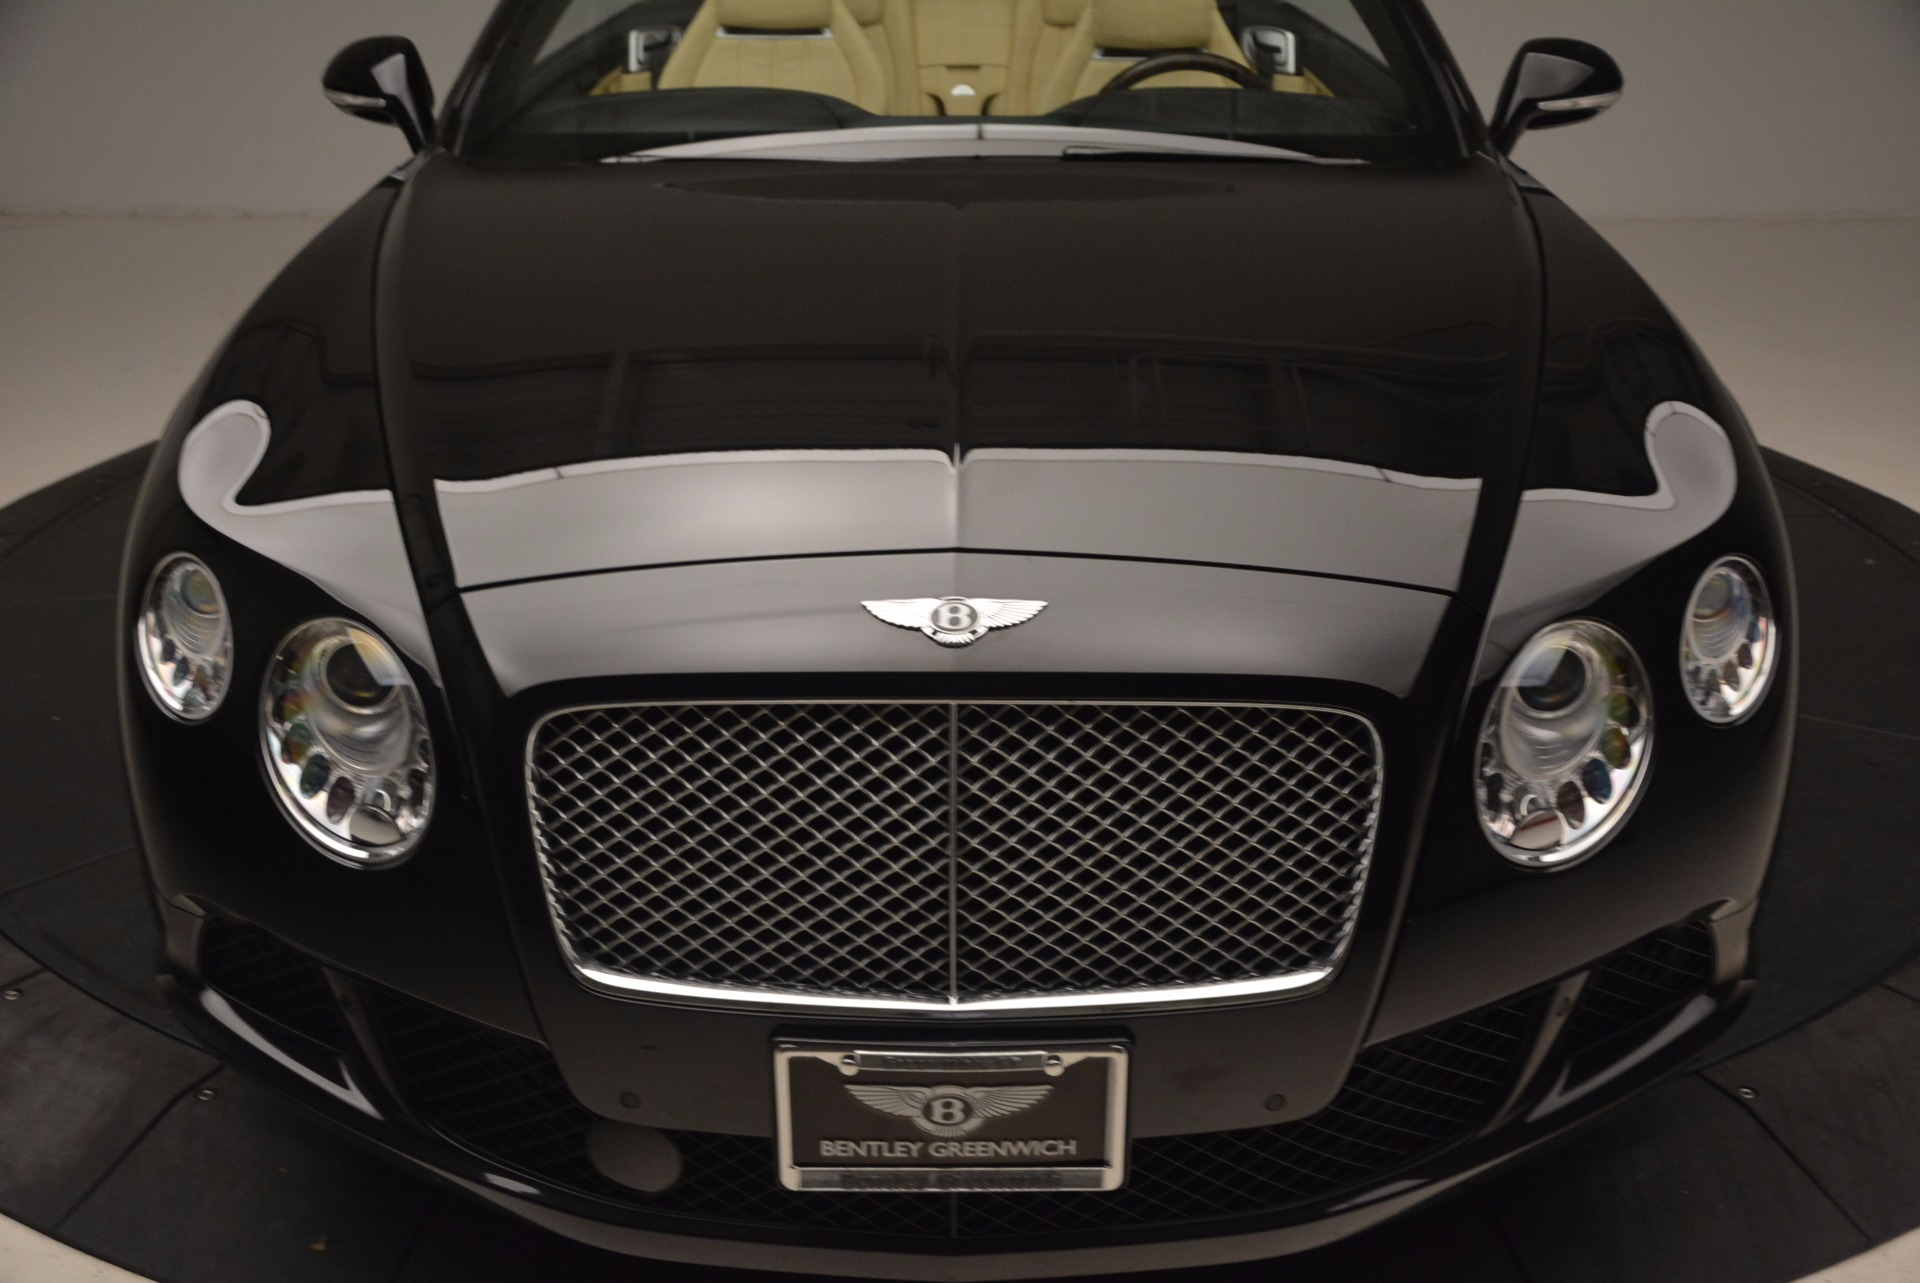 Used 2012 Bentley Continental GT W12 For Sale In Greenwich, CT. Alfa Romeo of Greenwich, 7286 1656_p24